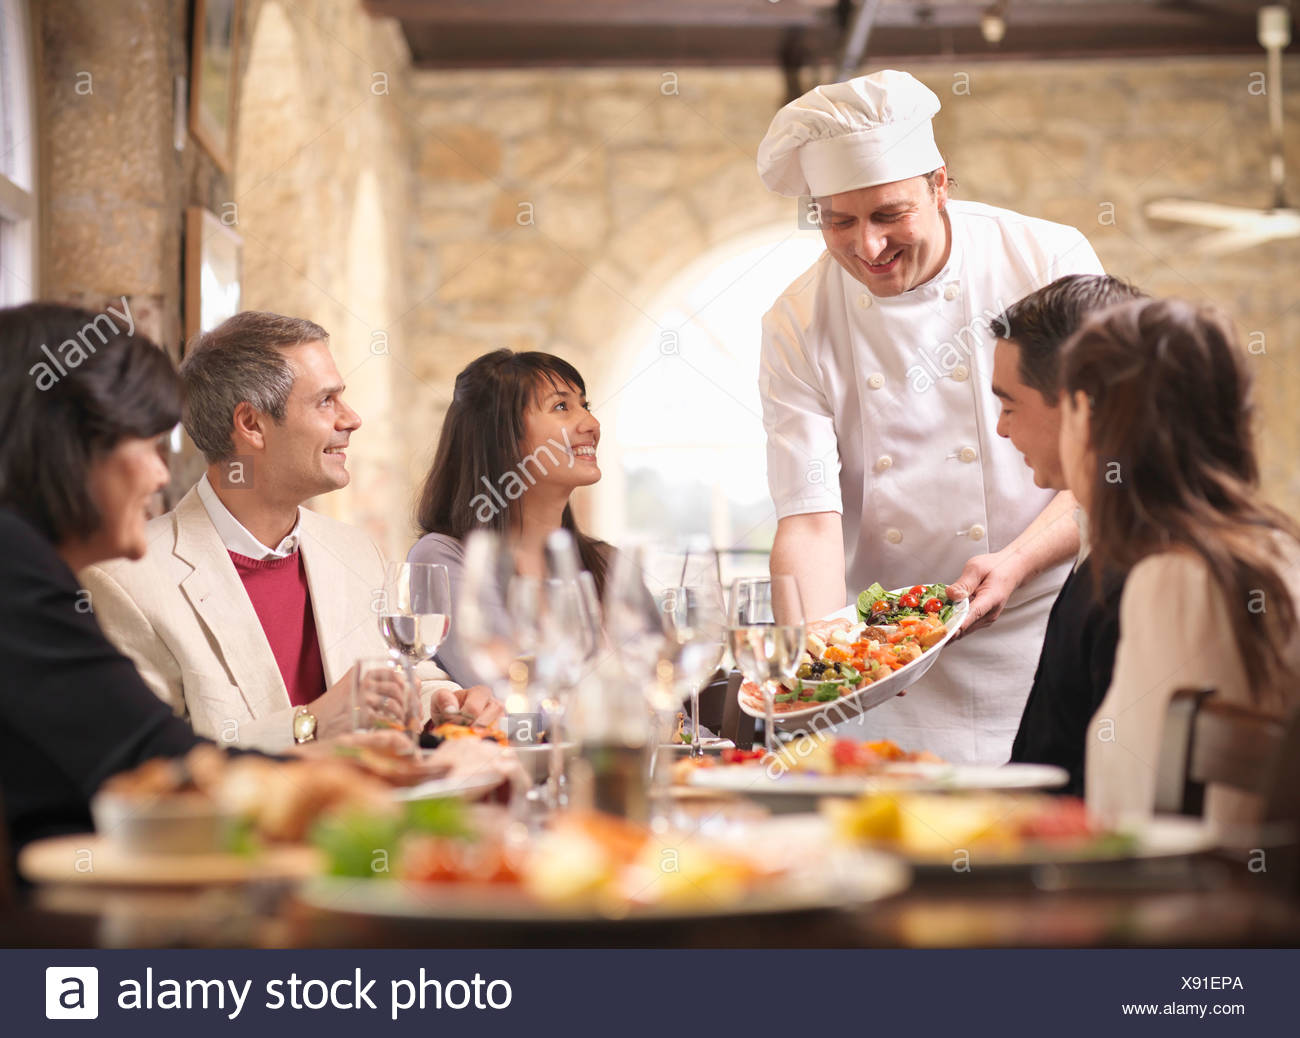 Chef serving people in restaurant - Stock Image